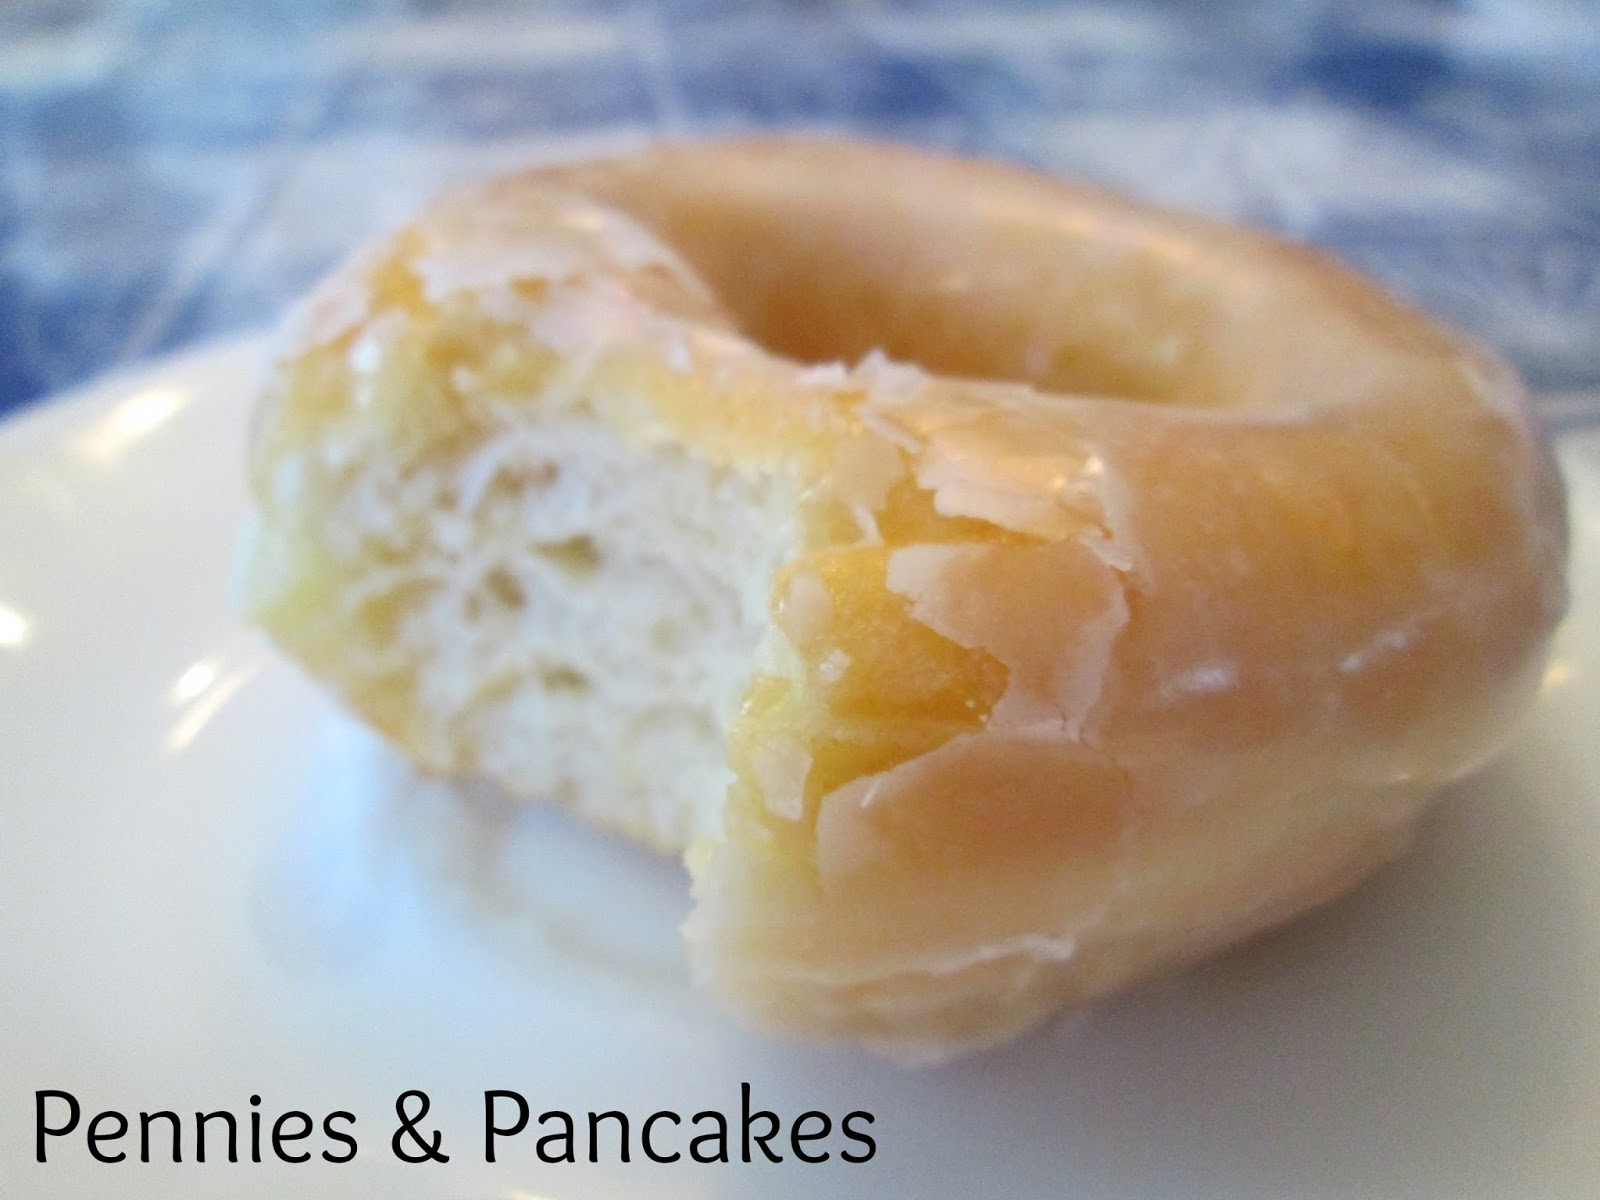 Pennies pancakes soft glazed donuts ccuart Image collections